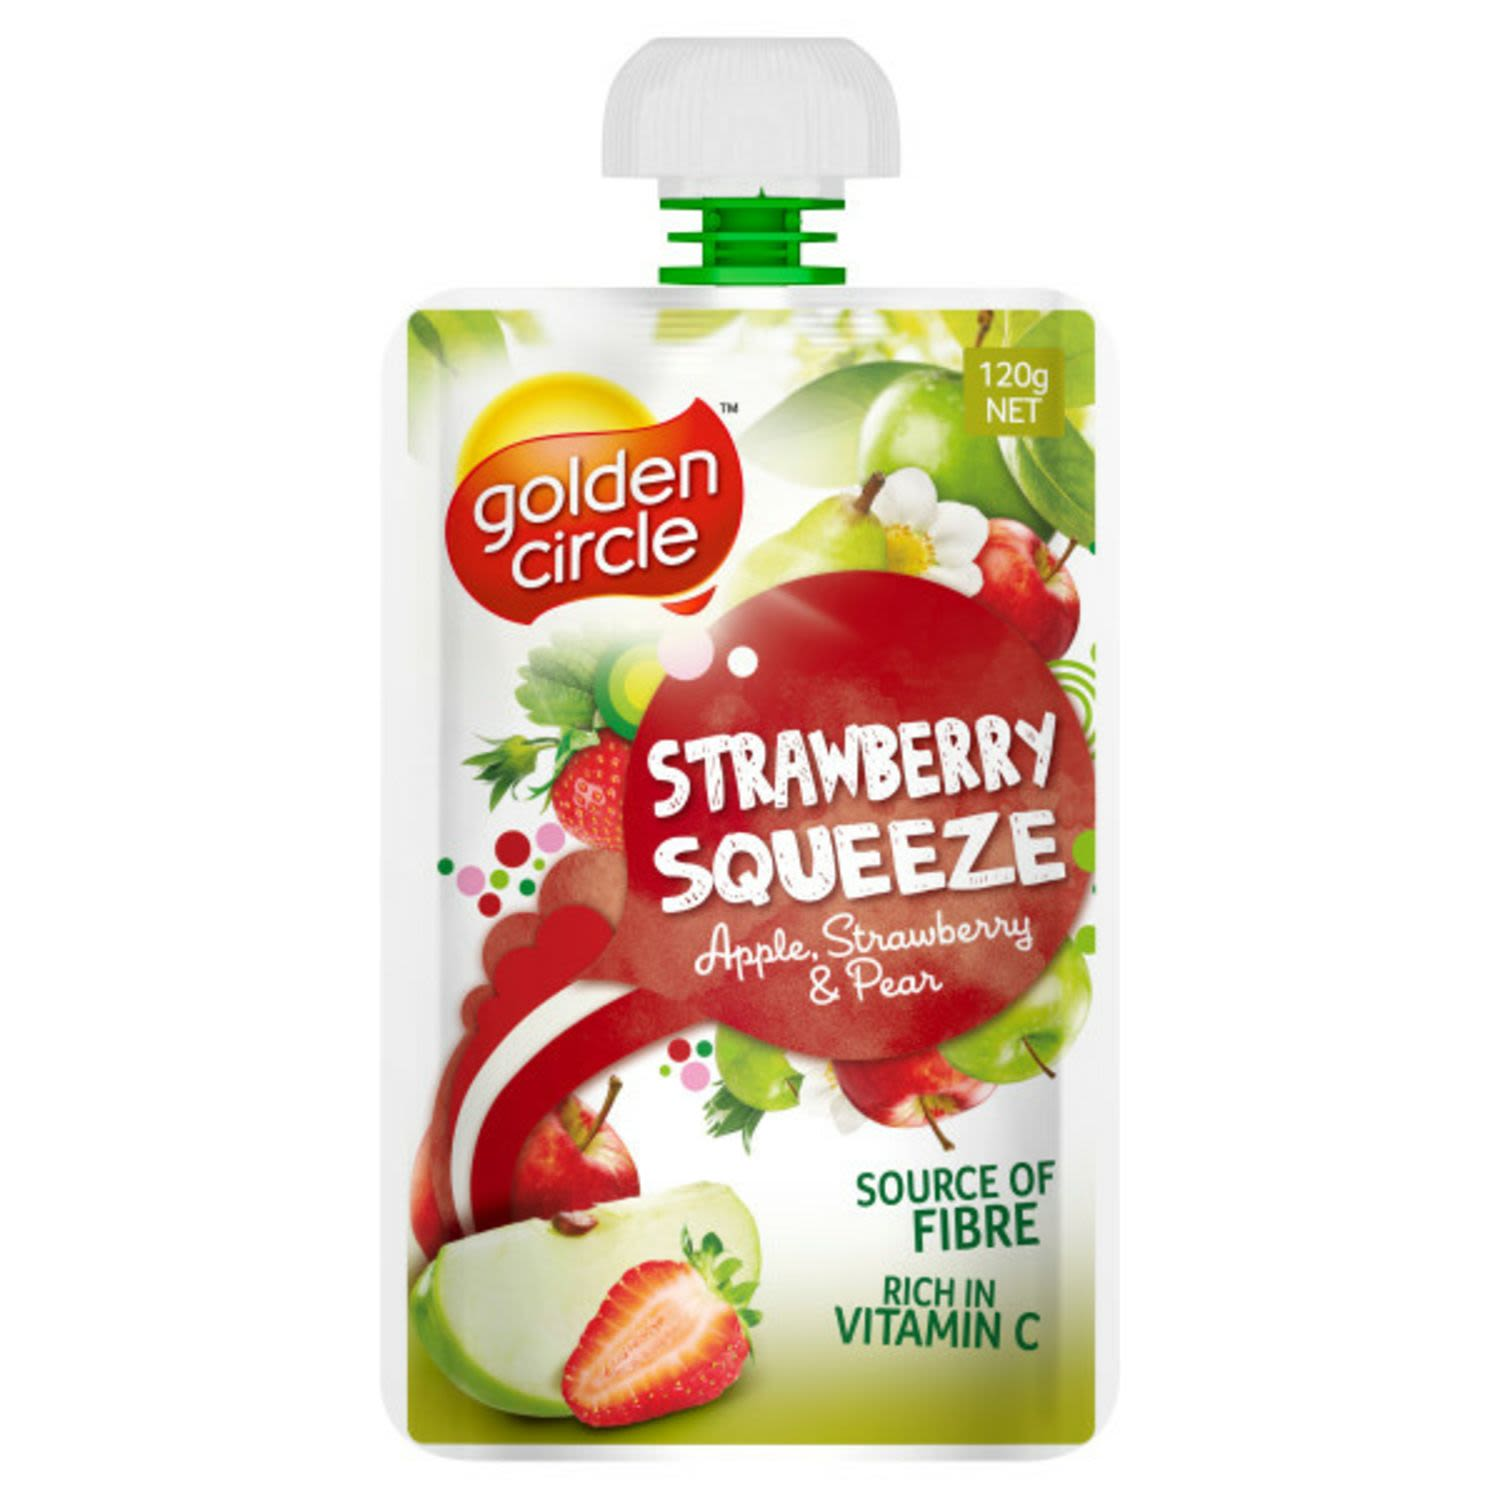 Golden Circle Strawberry Squeeze Apple, Strawberry & Pear Pouch, 120 Gram